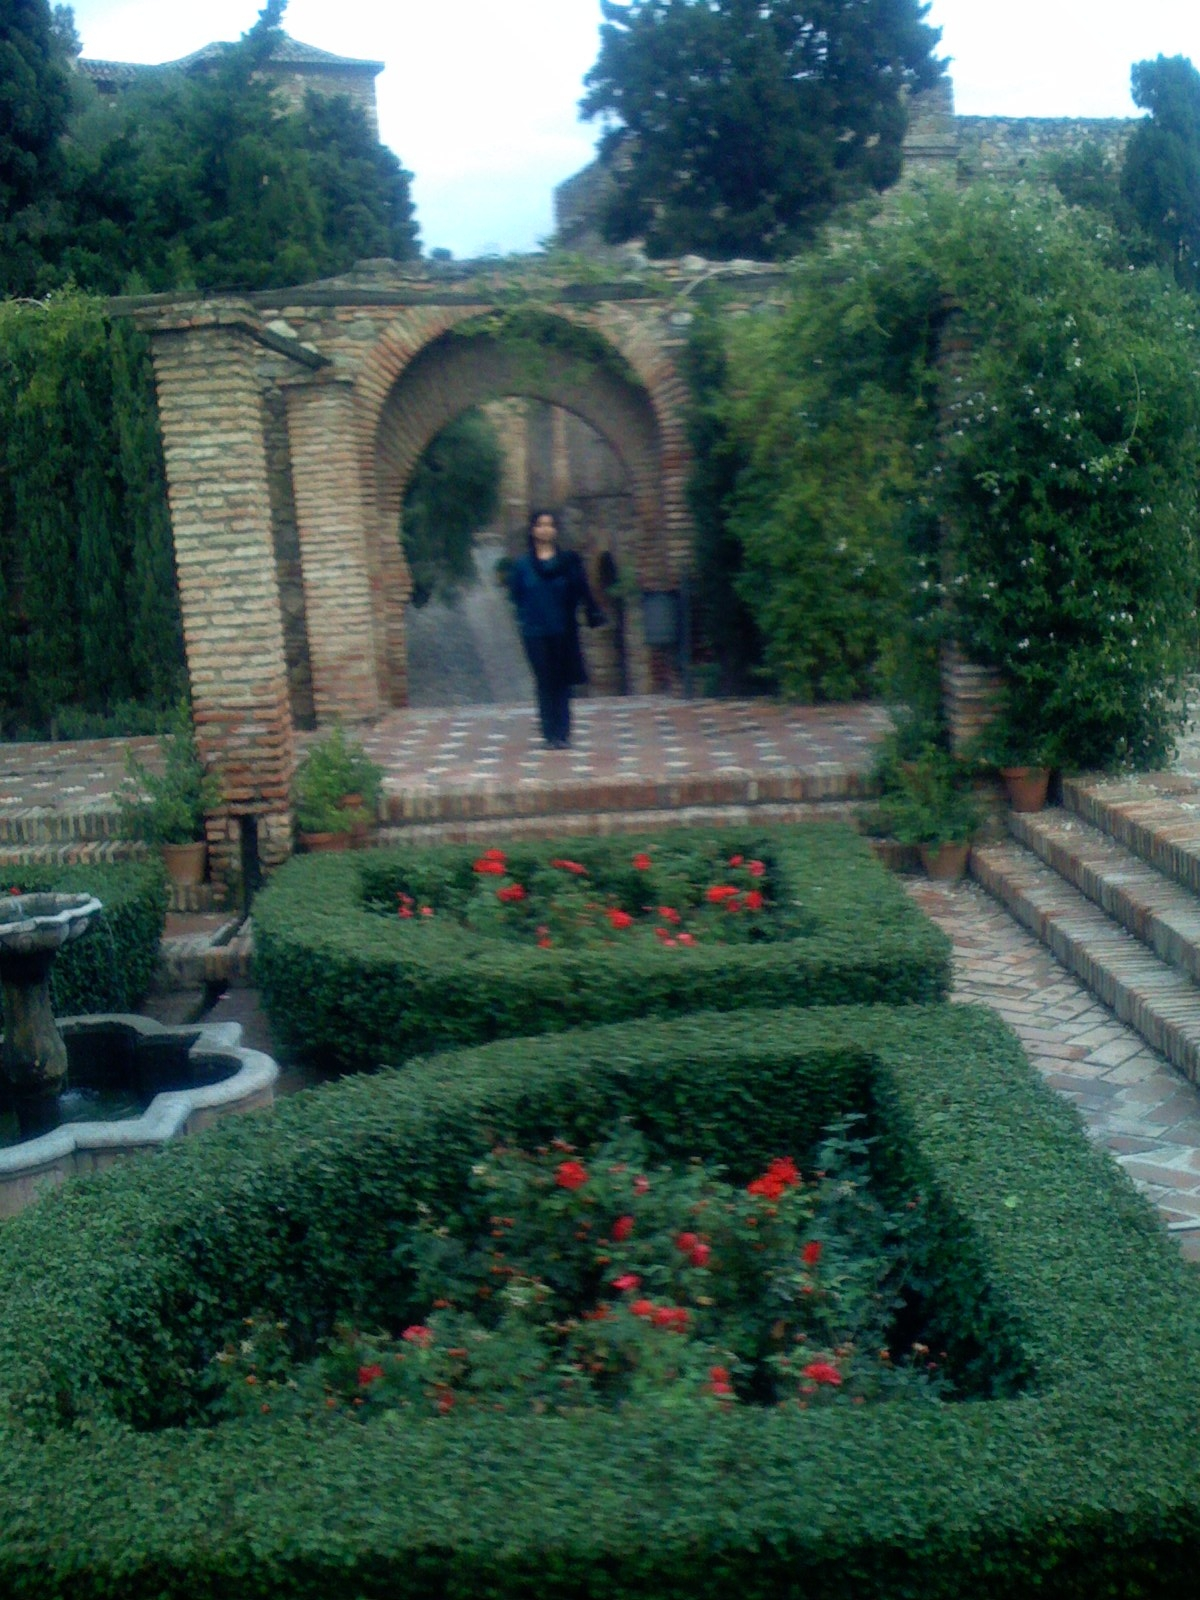 Gardens Inside Alcazaba in Malaga, Spain